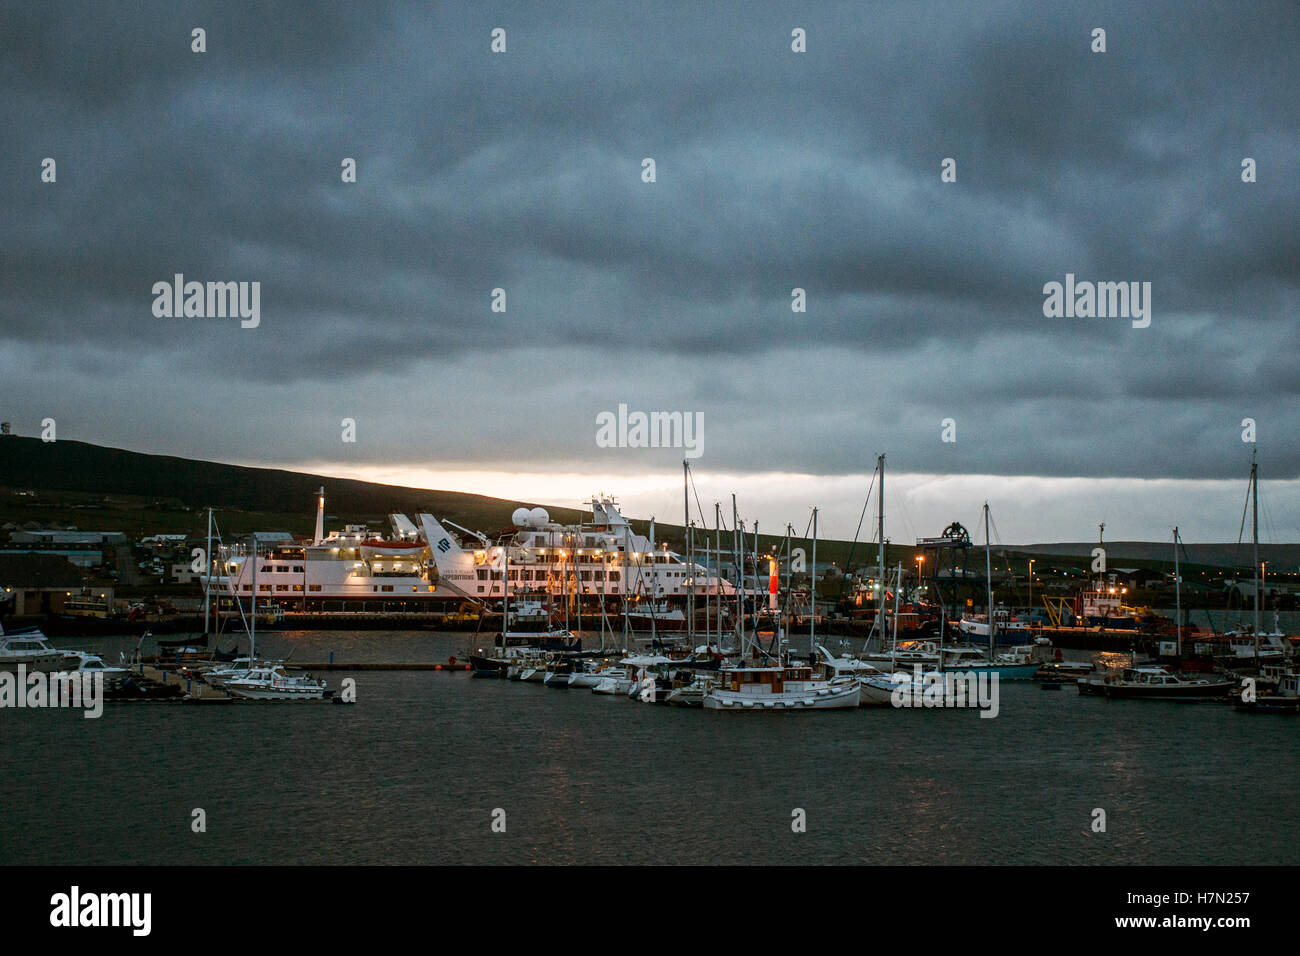 Ships Sunset Boat harbor in Kirkwall Orkney Islands Scotland United Kingdom 18.05.2016 - Stock Image